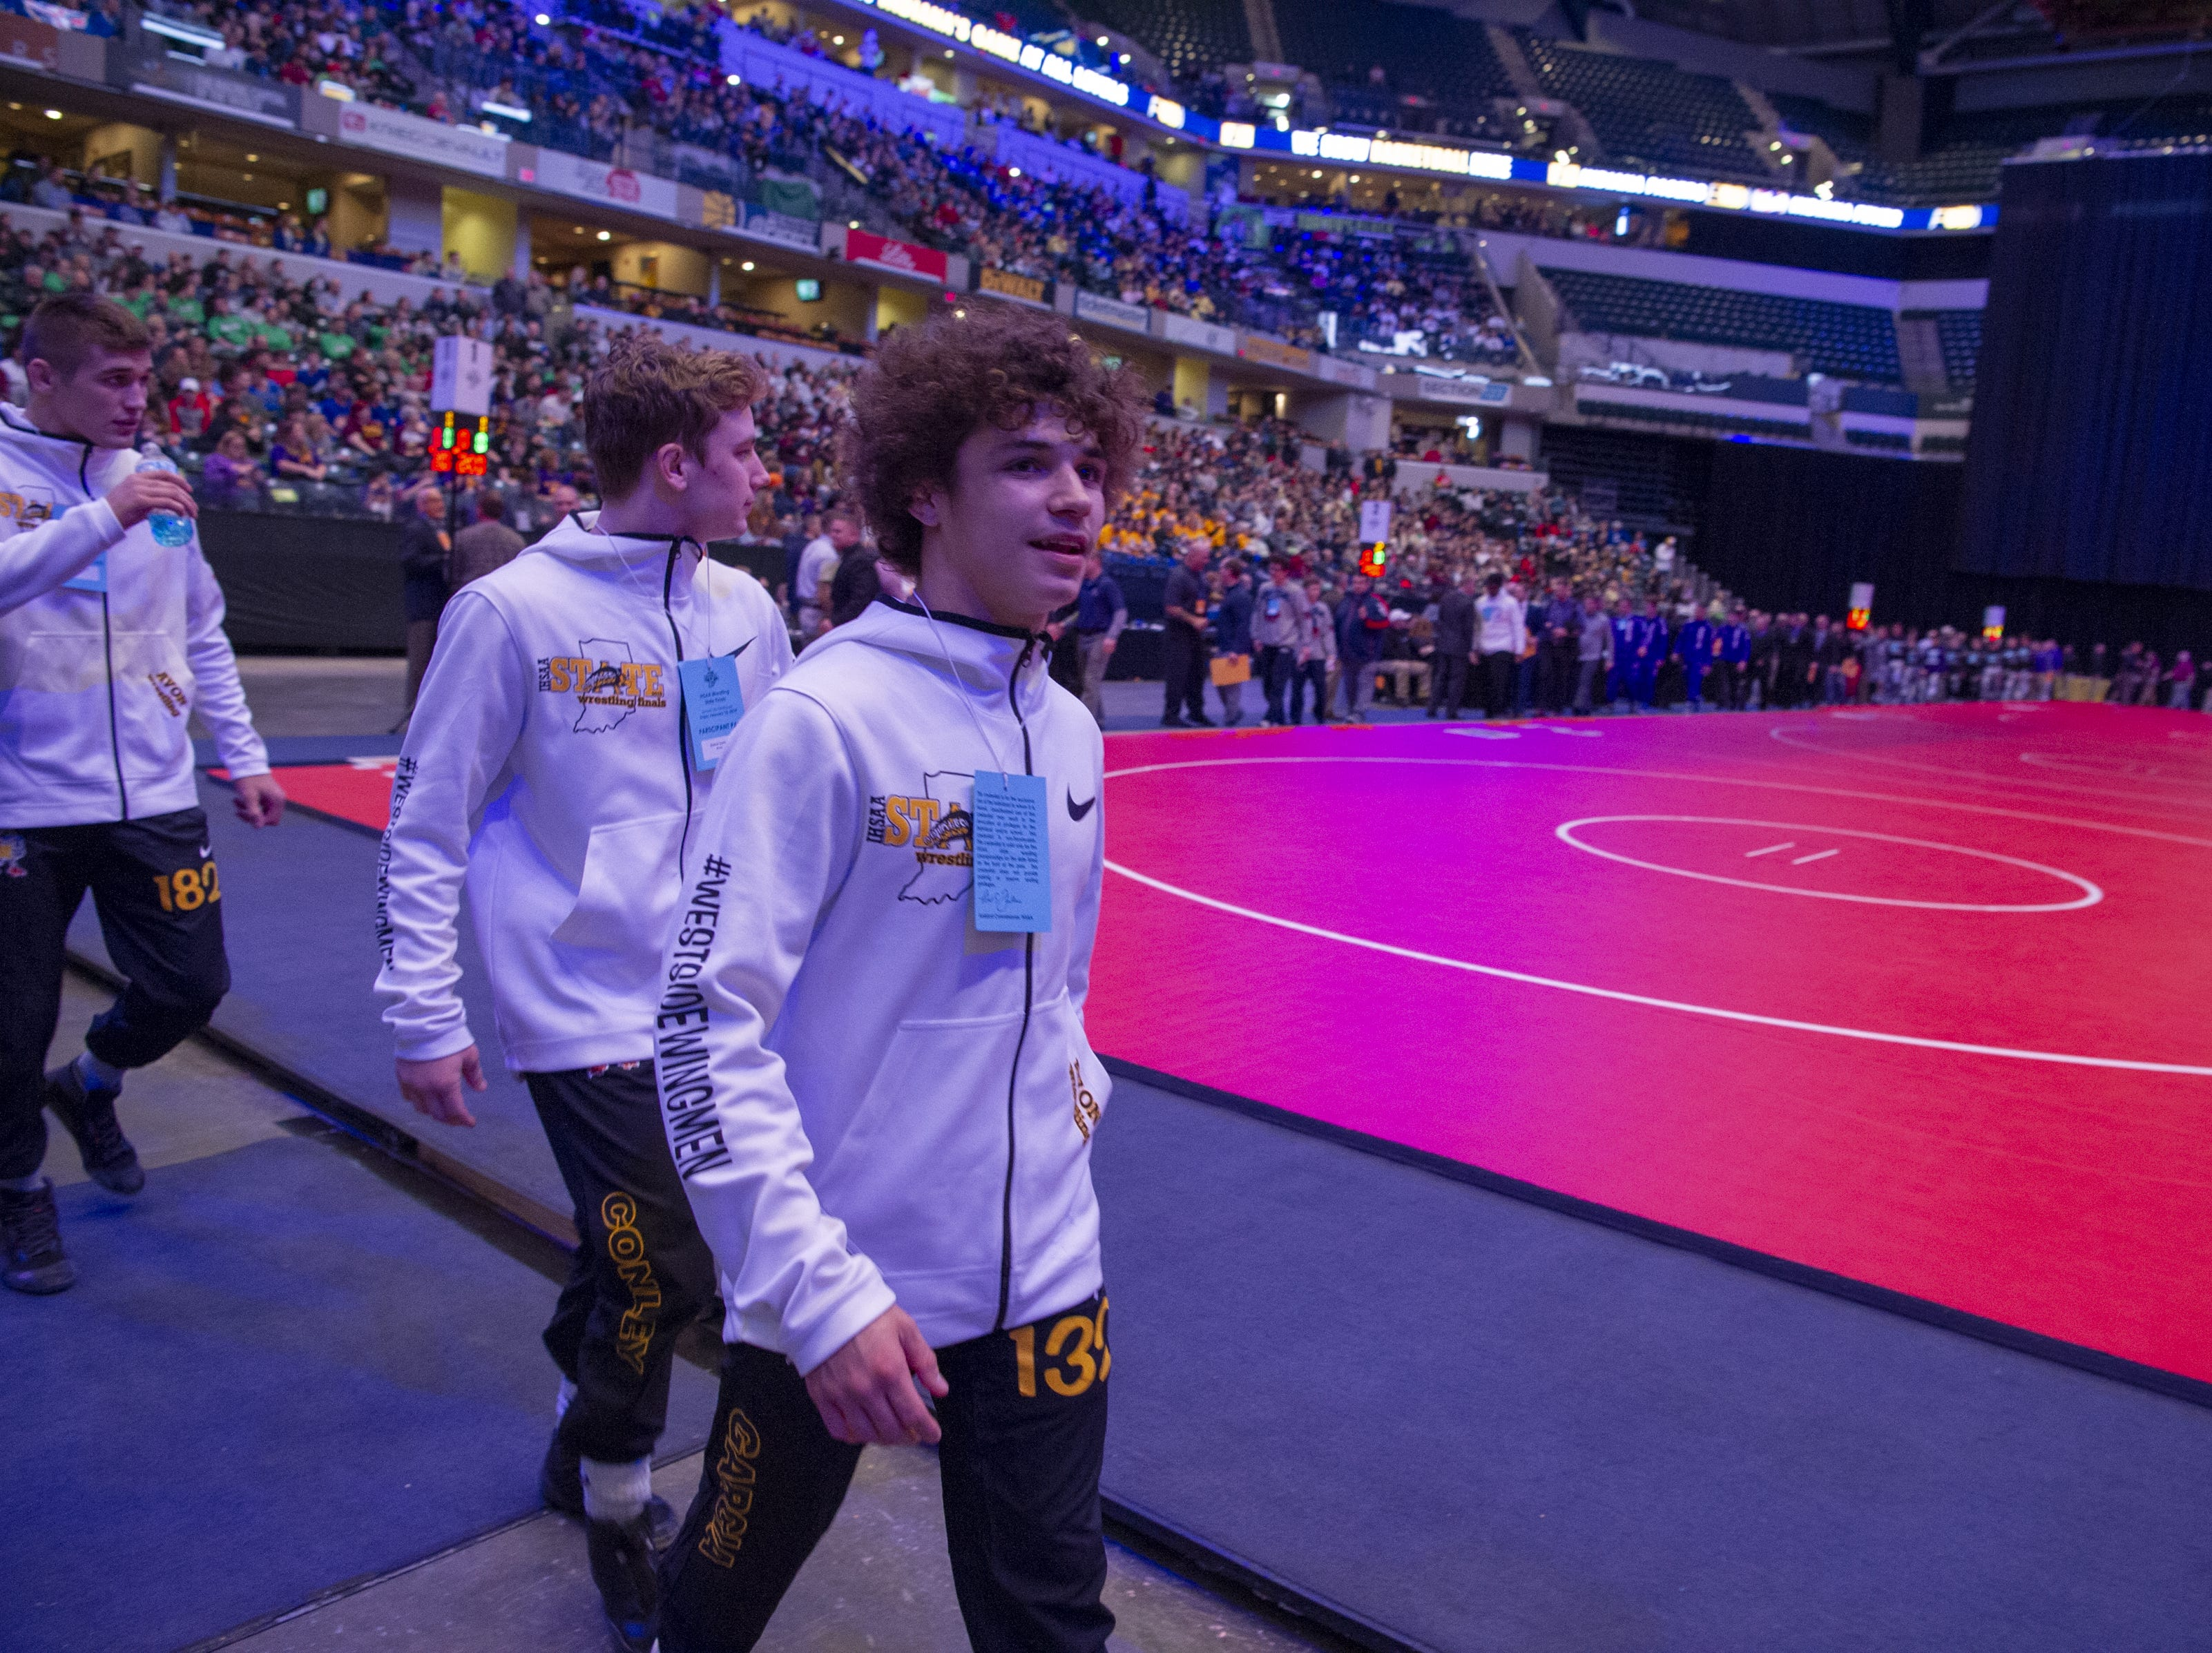 Avon High School wrestlers walk into the fieldhouse during team introductions before the first day of competition in the 81st Annual IHSAA Wrestling State Finals at Bankers Life Fieldhouse in Indianapolis, Friday, Feb. 15, 2019.